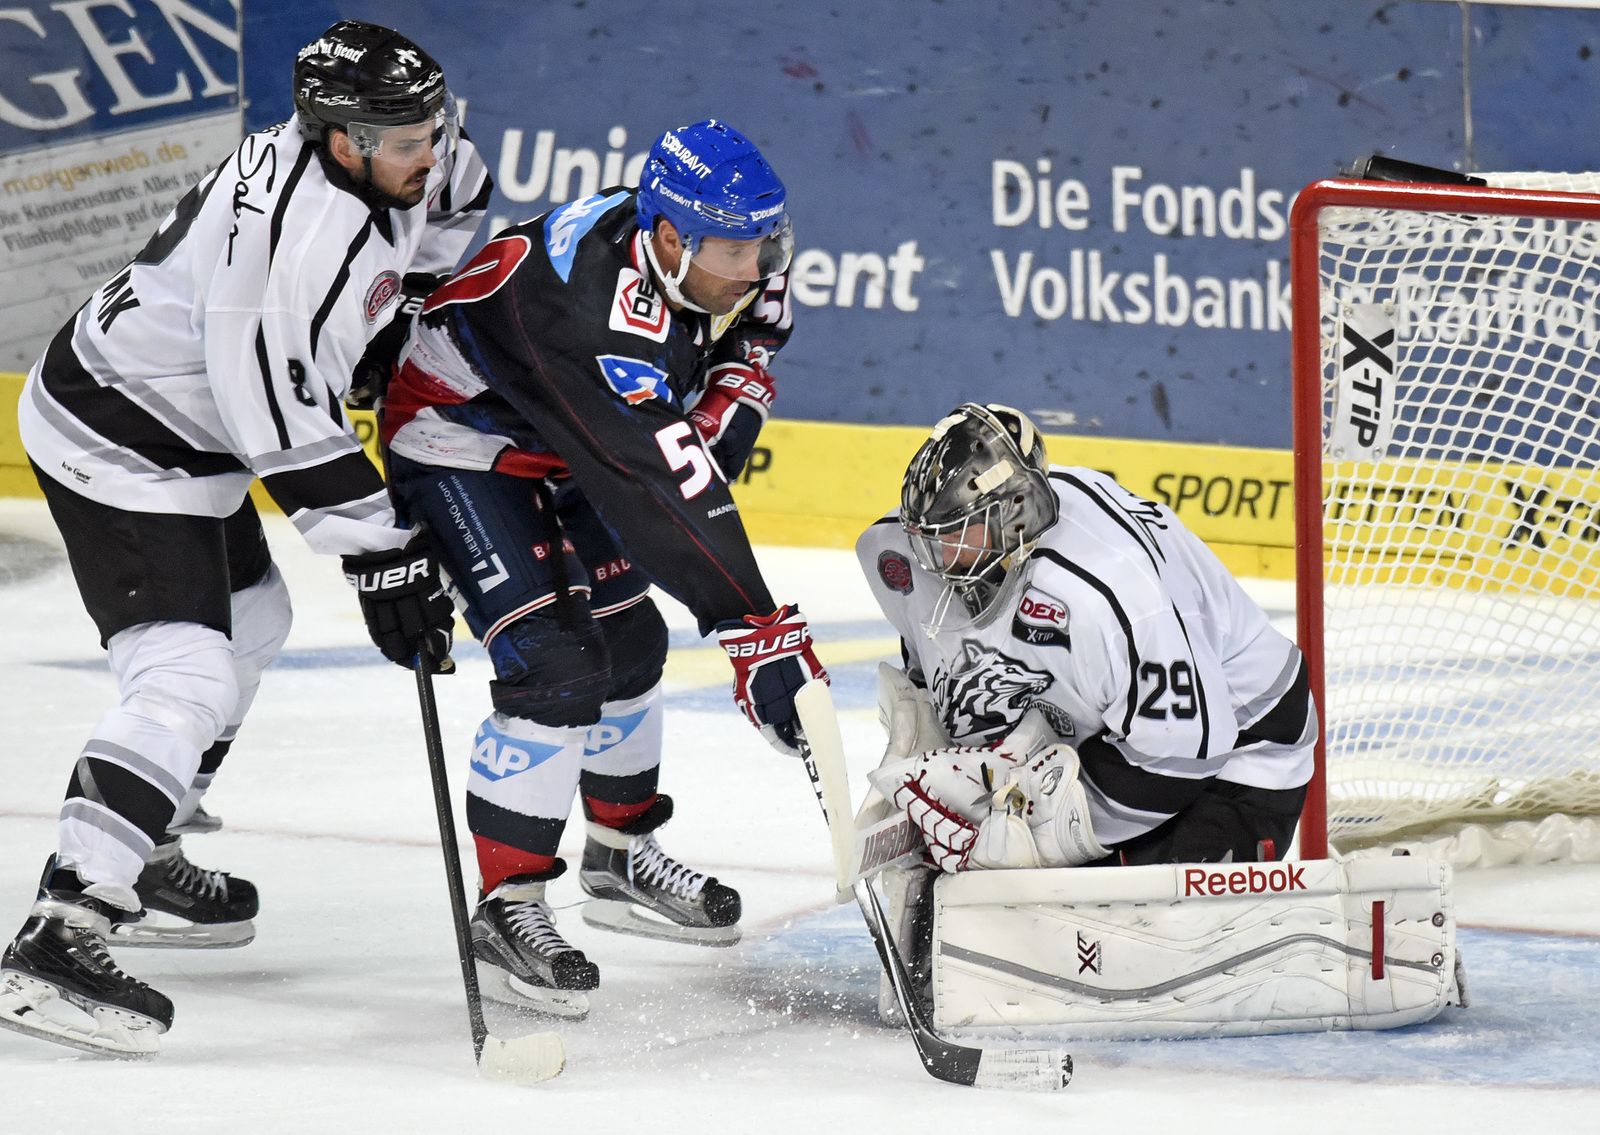 ice hockey bundesliga